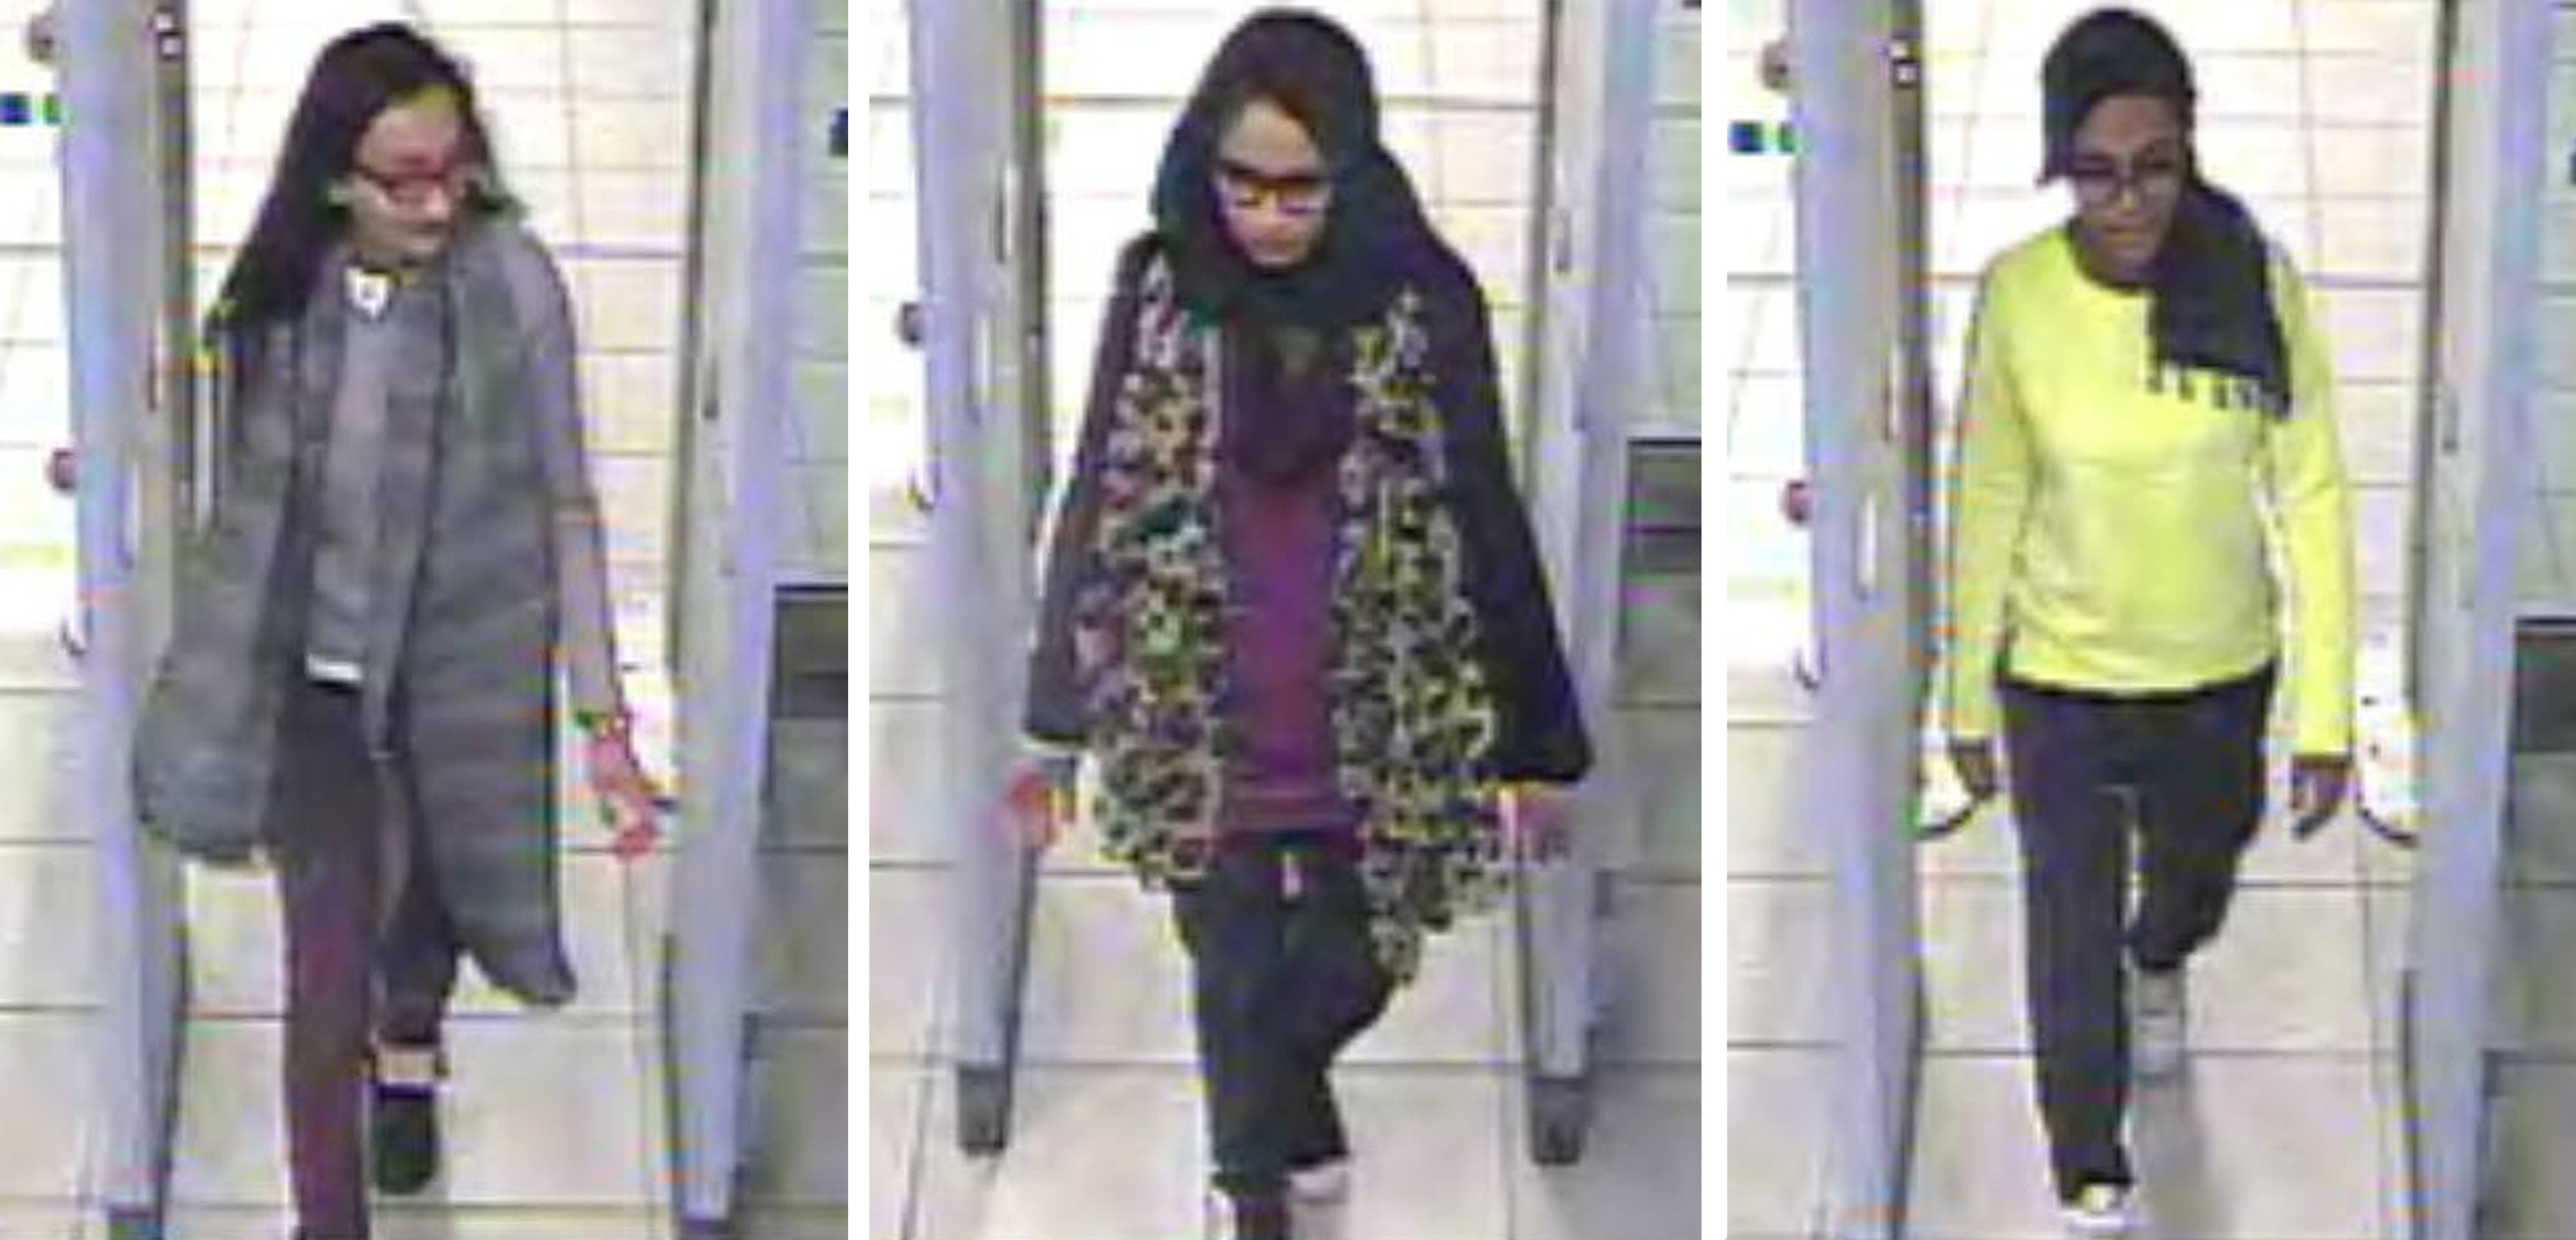 This handout image of a three stills taken from CCTV shows Kadiza Sultana, left, Shamima Begum, center, and Amira Abase going through security at Gatwick airport, south England on Feb. 23, 2015.